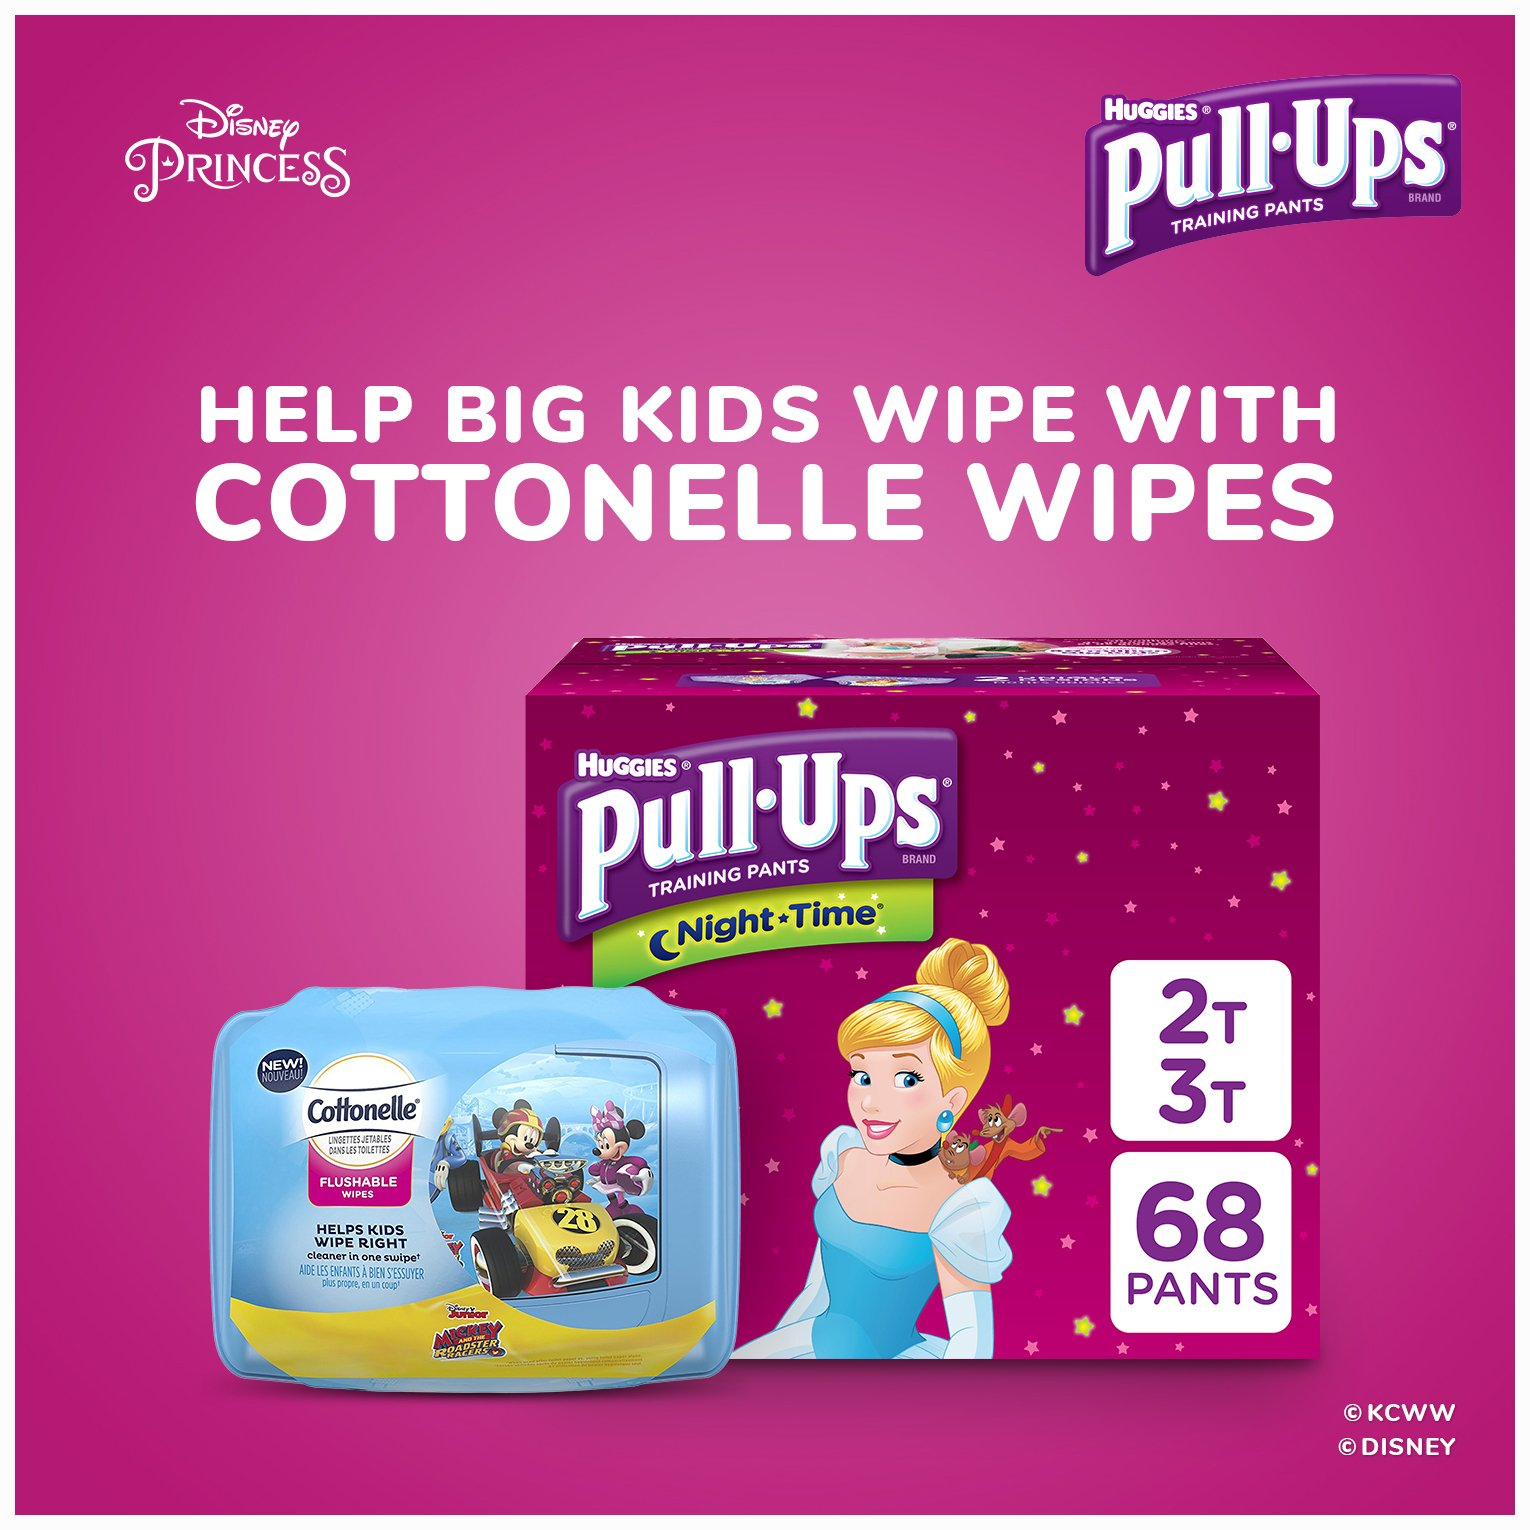 Pull-Ups Night-Time Potty Training Pants for Girls, 3T-4T (32-40 lb.), 20 Ct. (Packaging May Vary) (Pack of 4) by Huggies (Image #8)